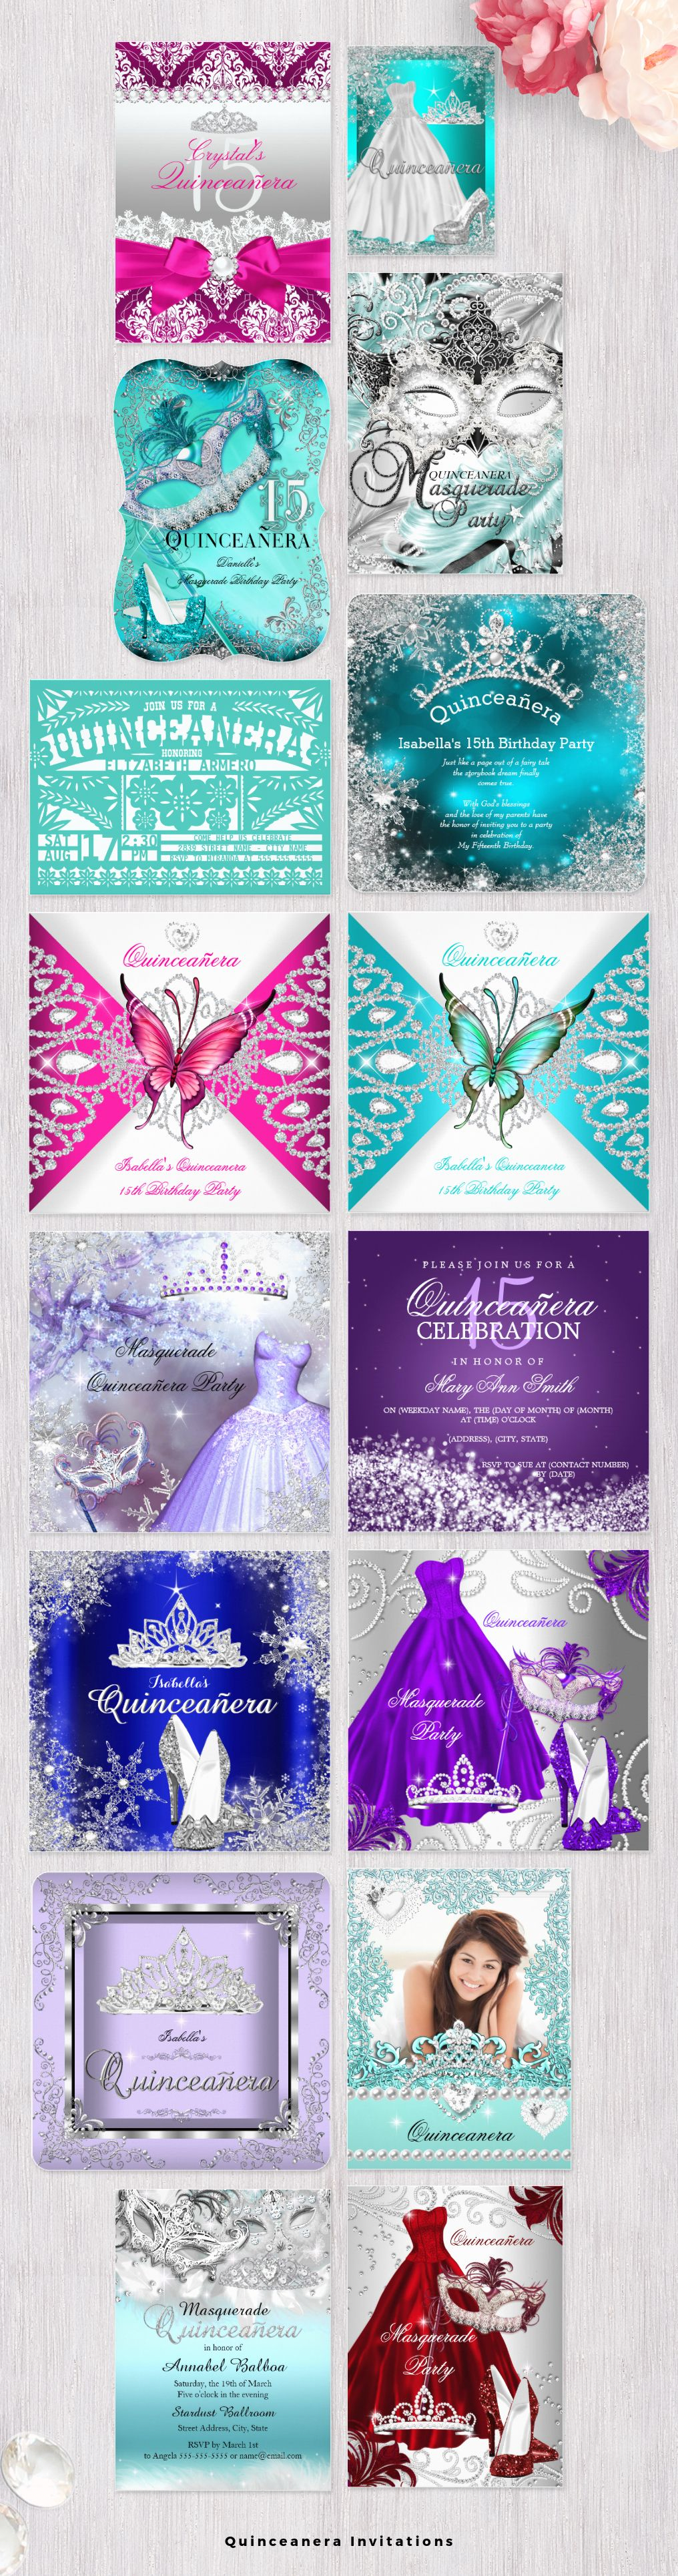 Quinceanera Invitations with easy to edit templates to create your